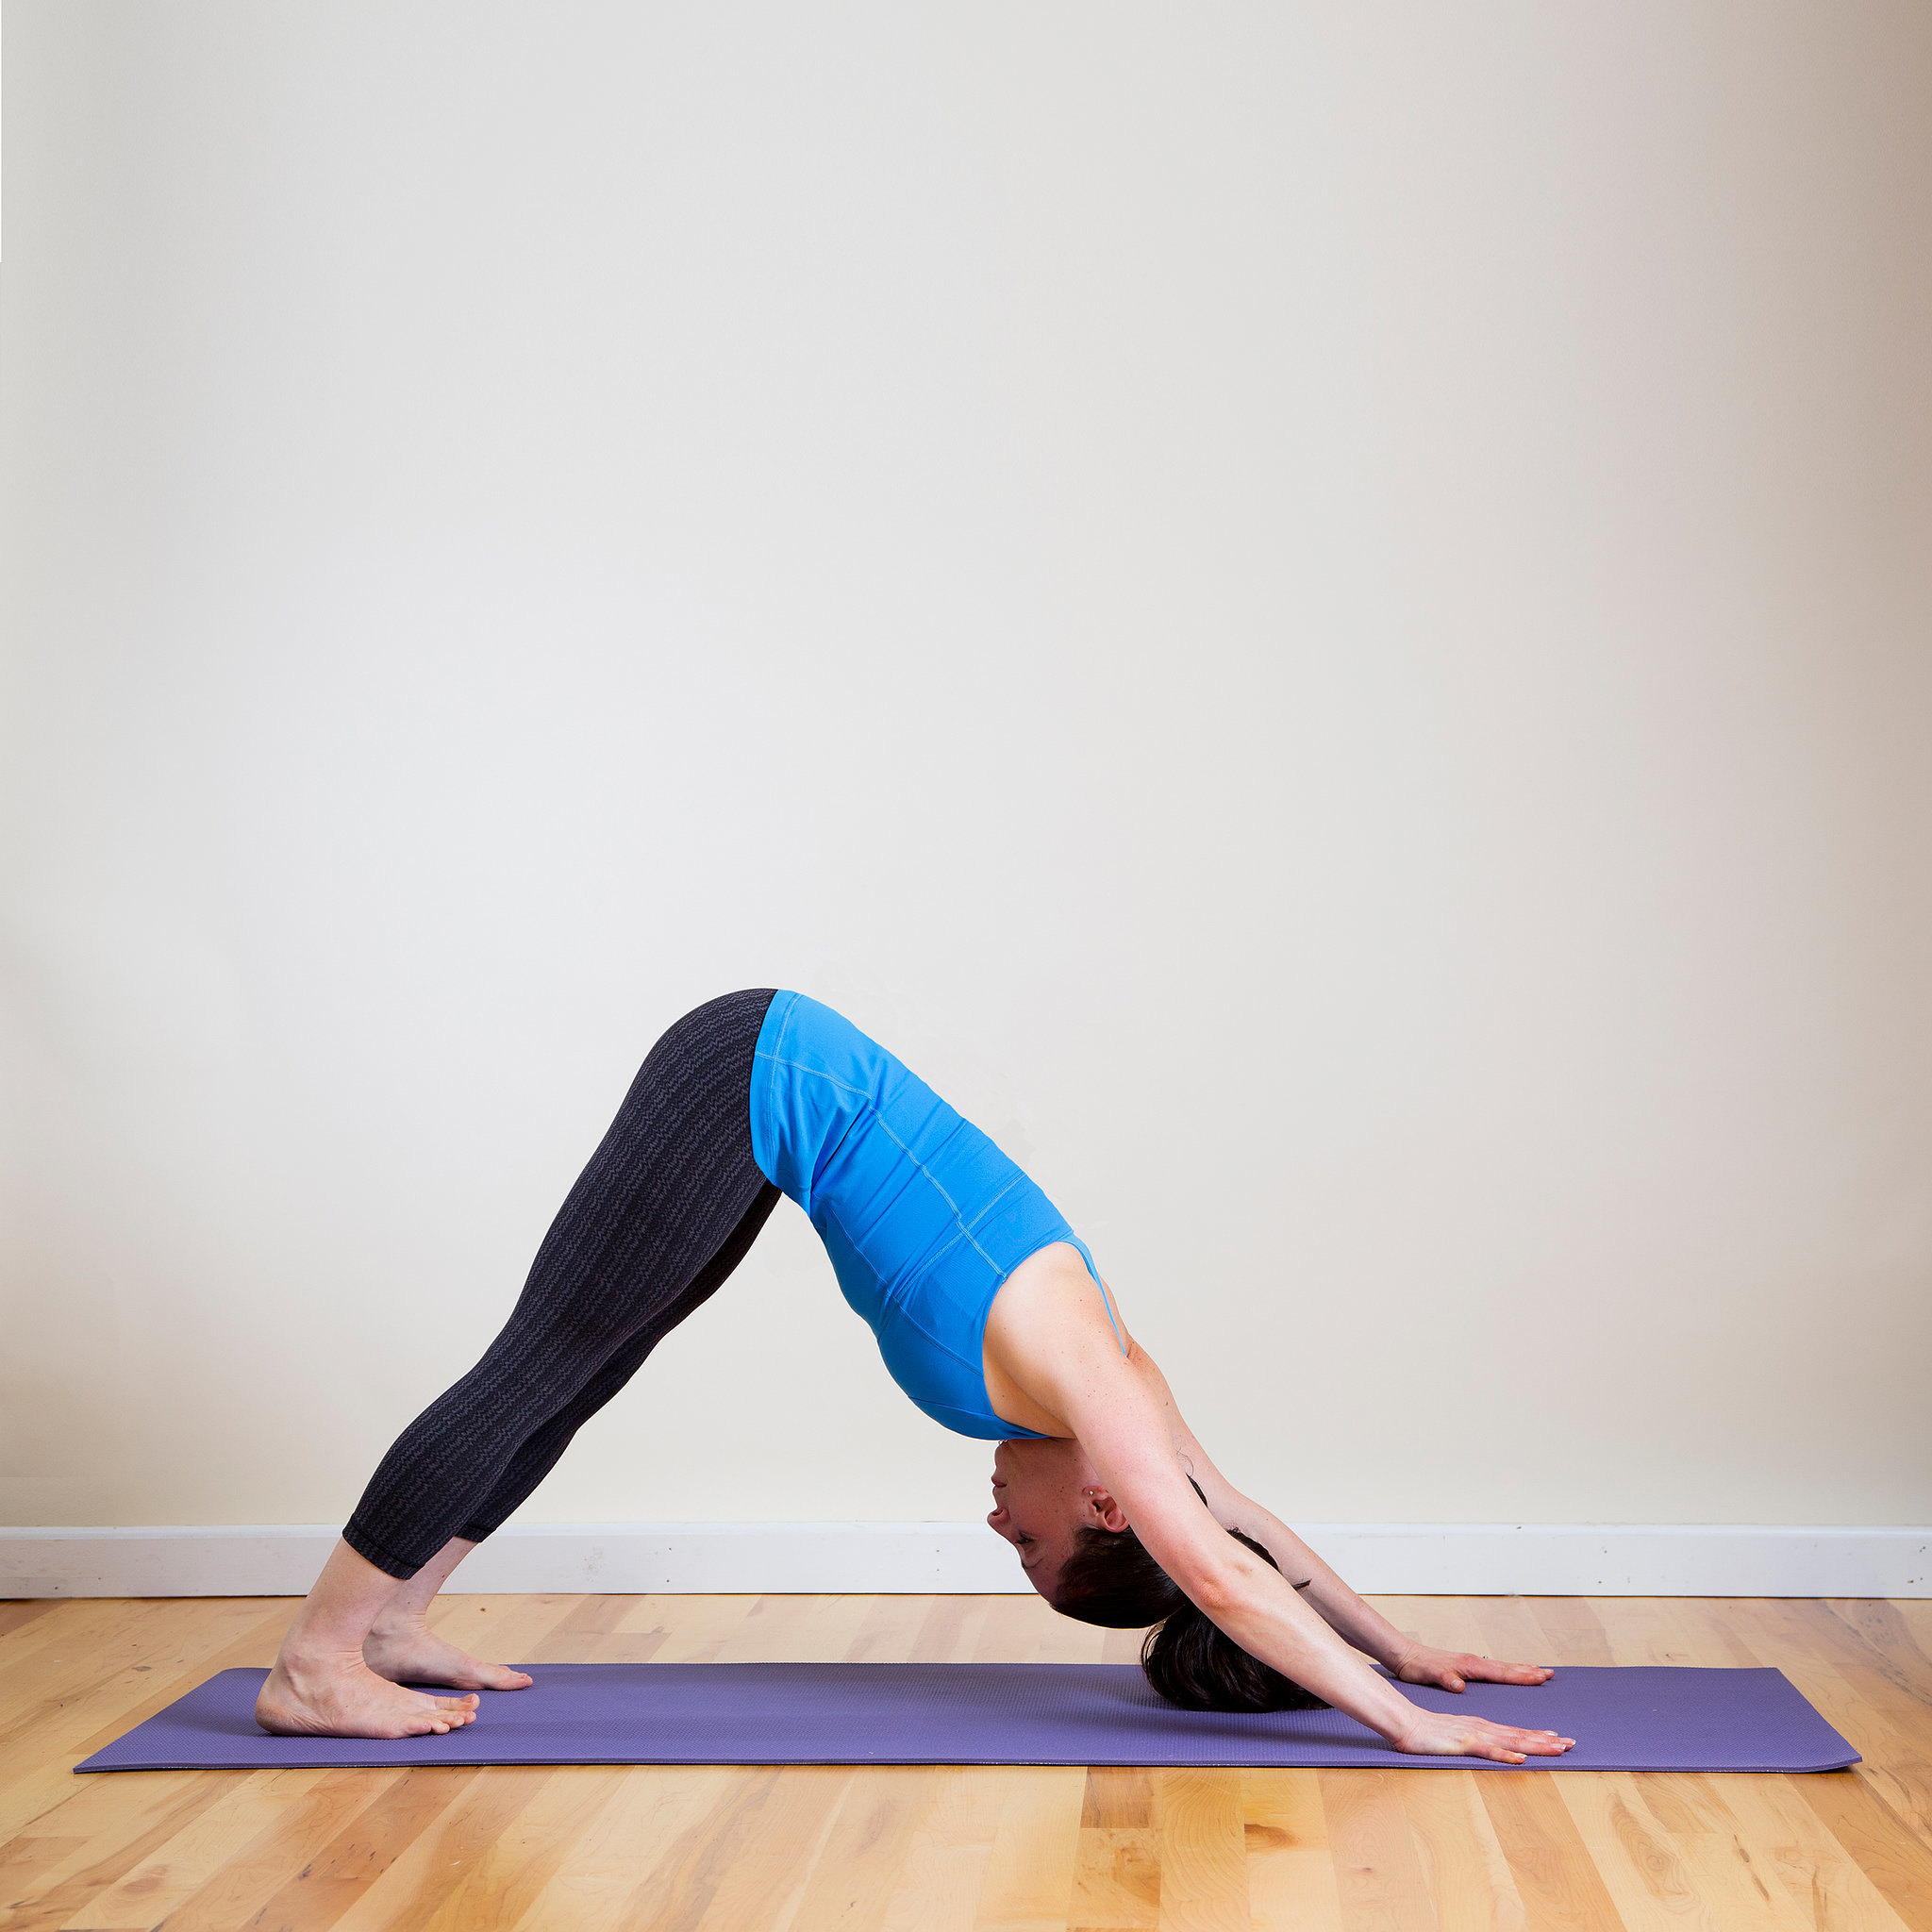 Your Hands in Downward Dog